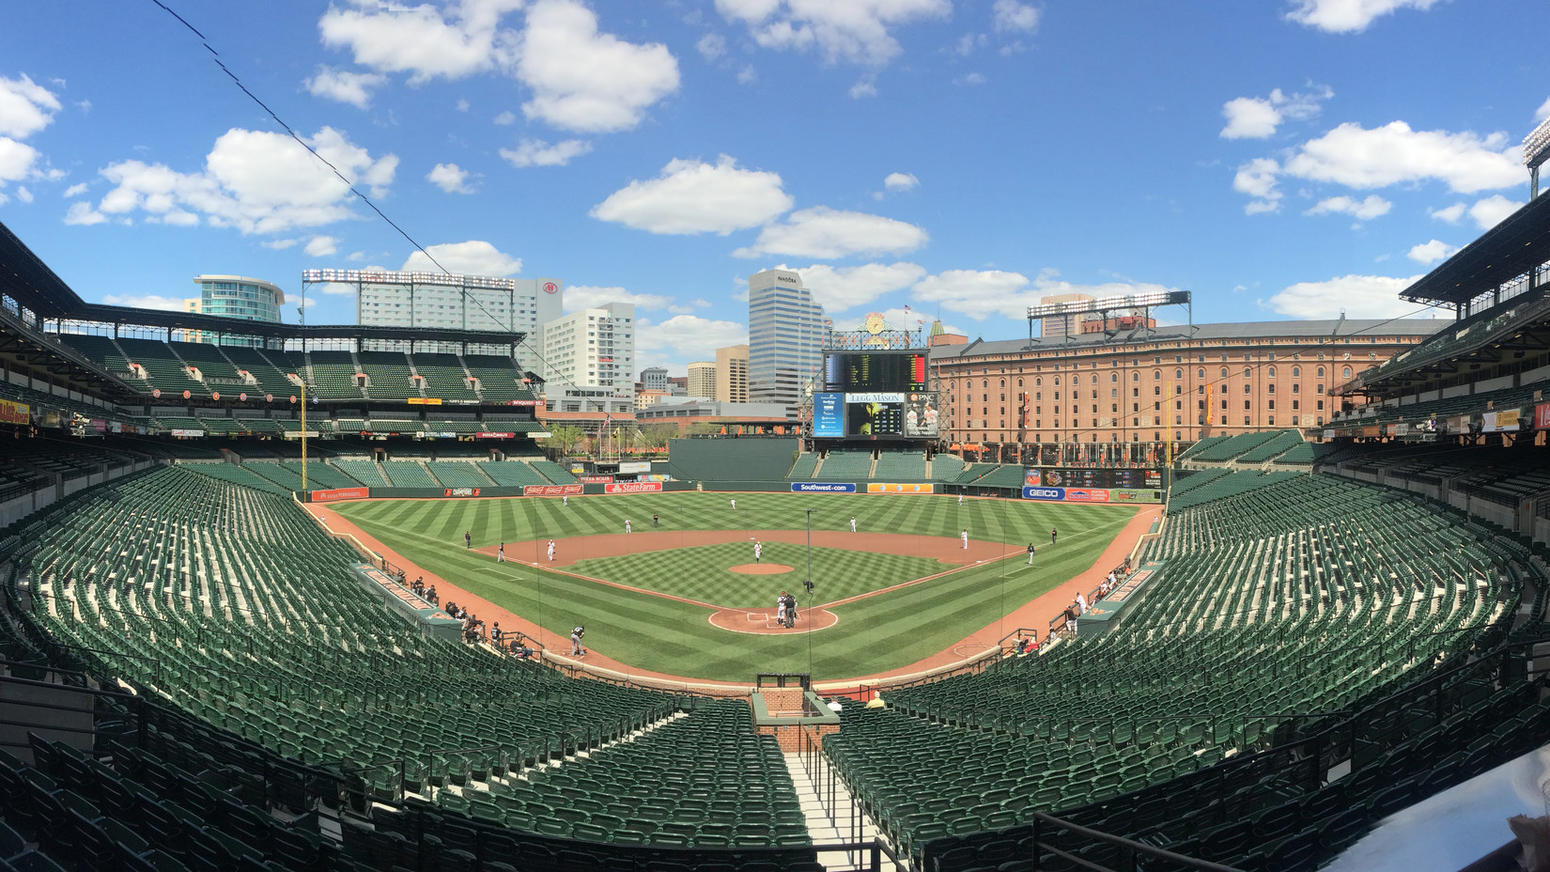 Orioles game